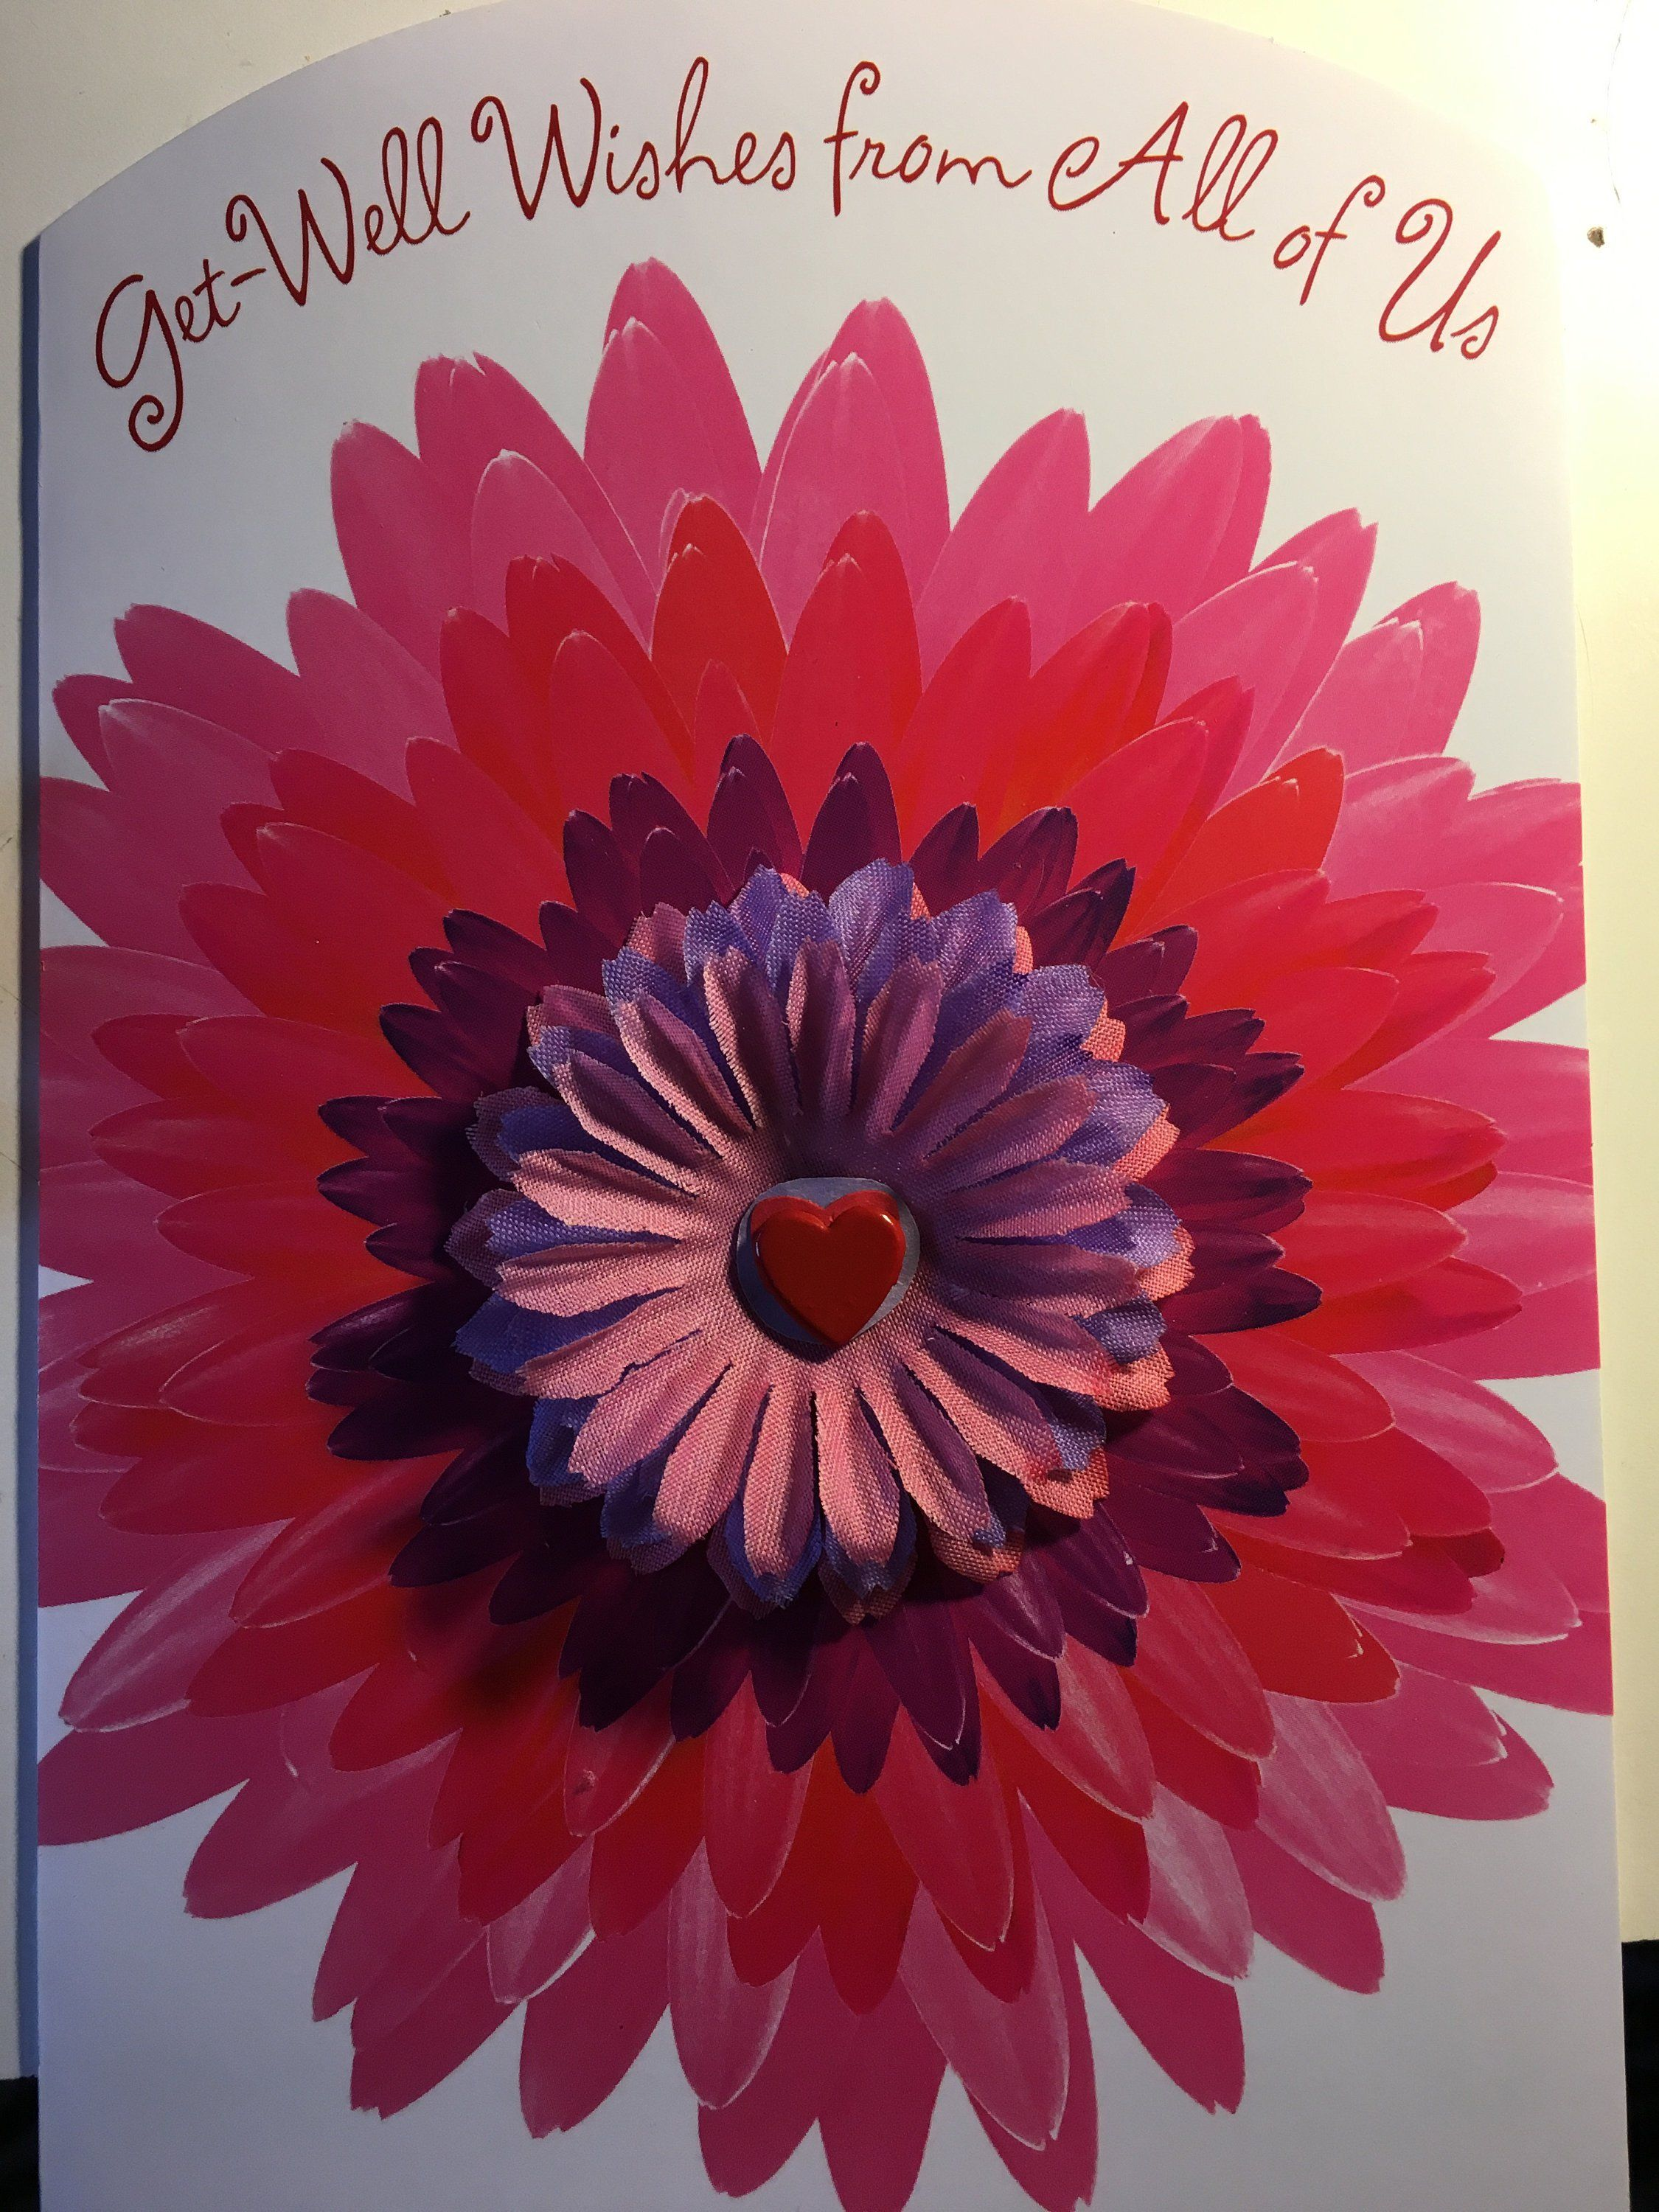 Super Unique And Pretty Get Well Card Plus Quilled Matching 4 Flower Magnet Set As Gift Get Well Cards Flower Magnets Pretty Cards